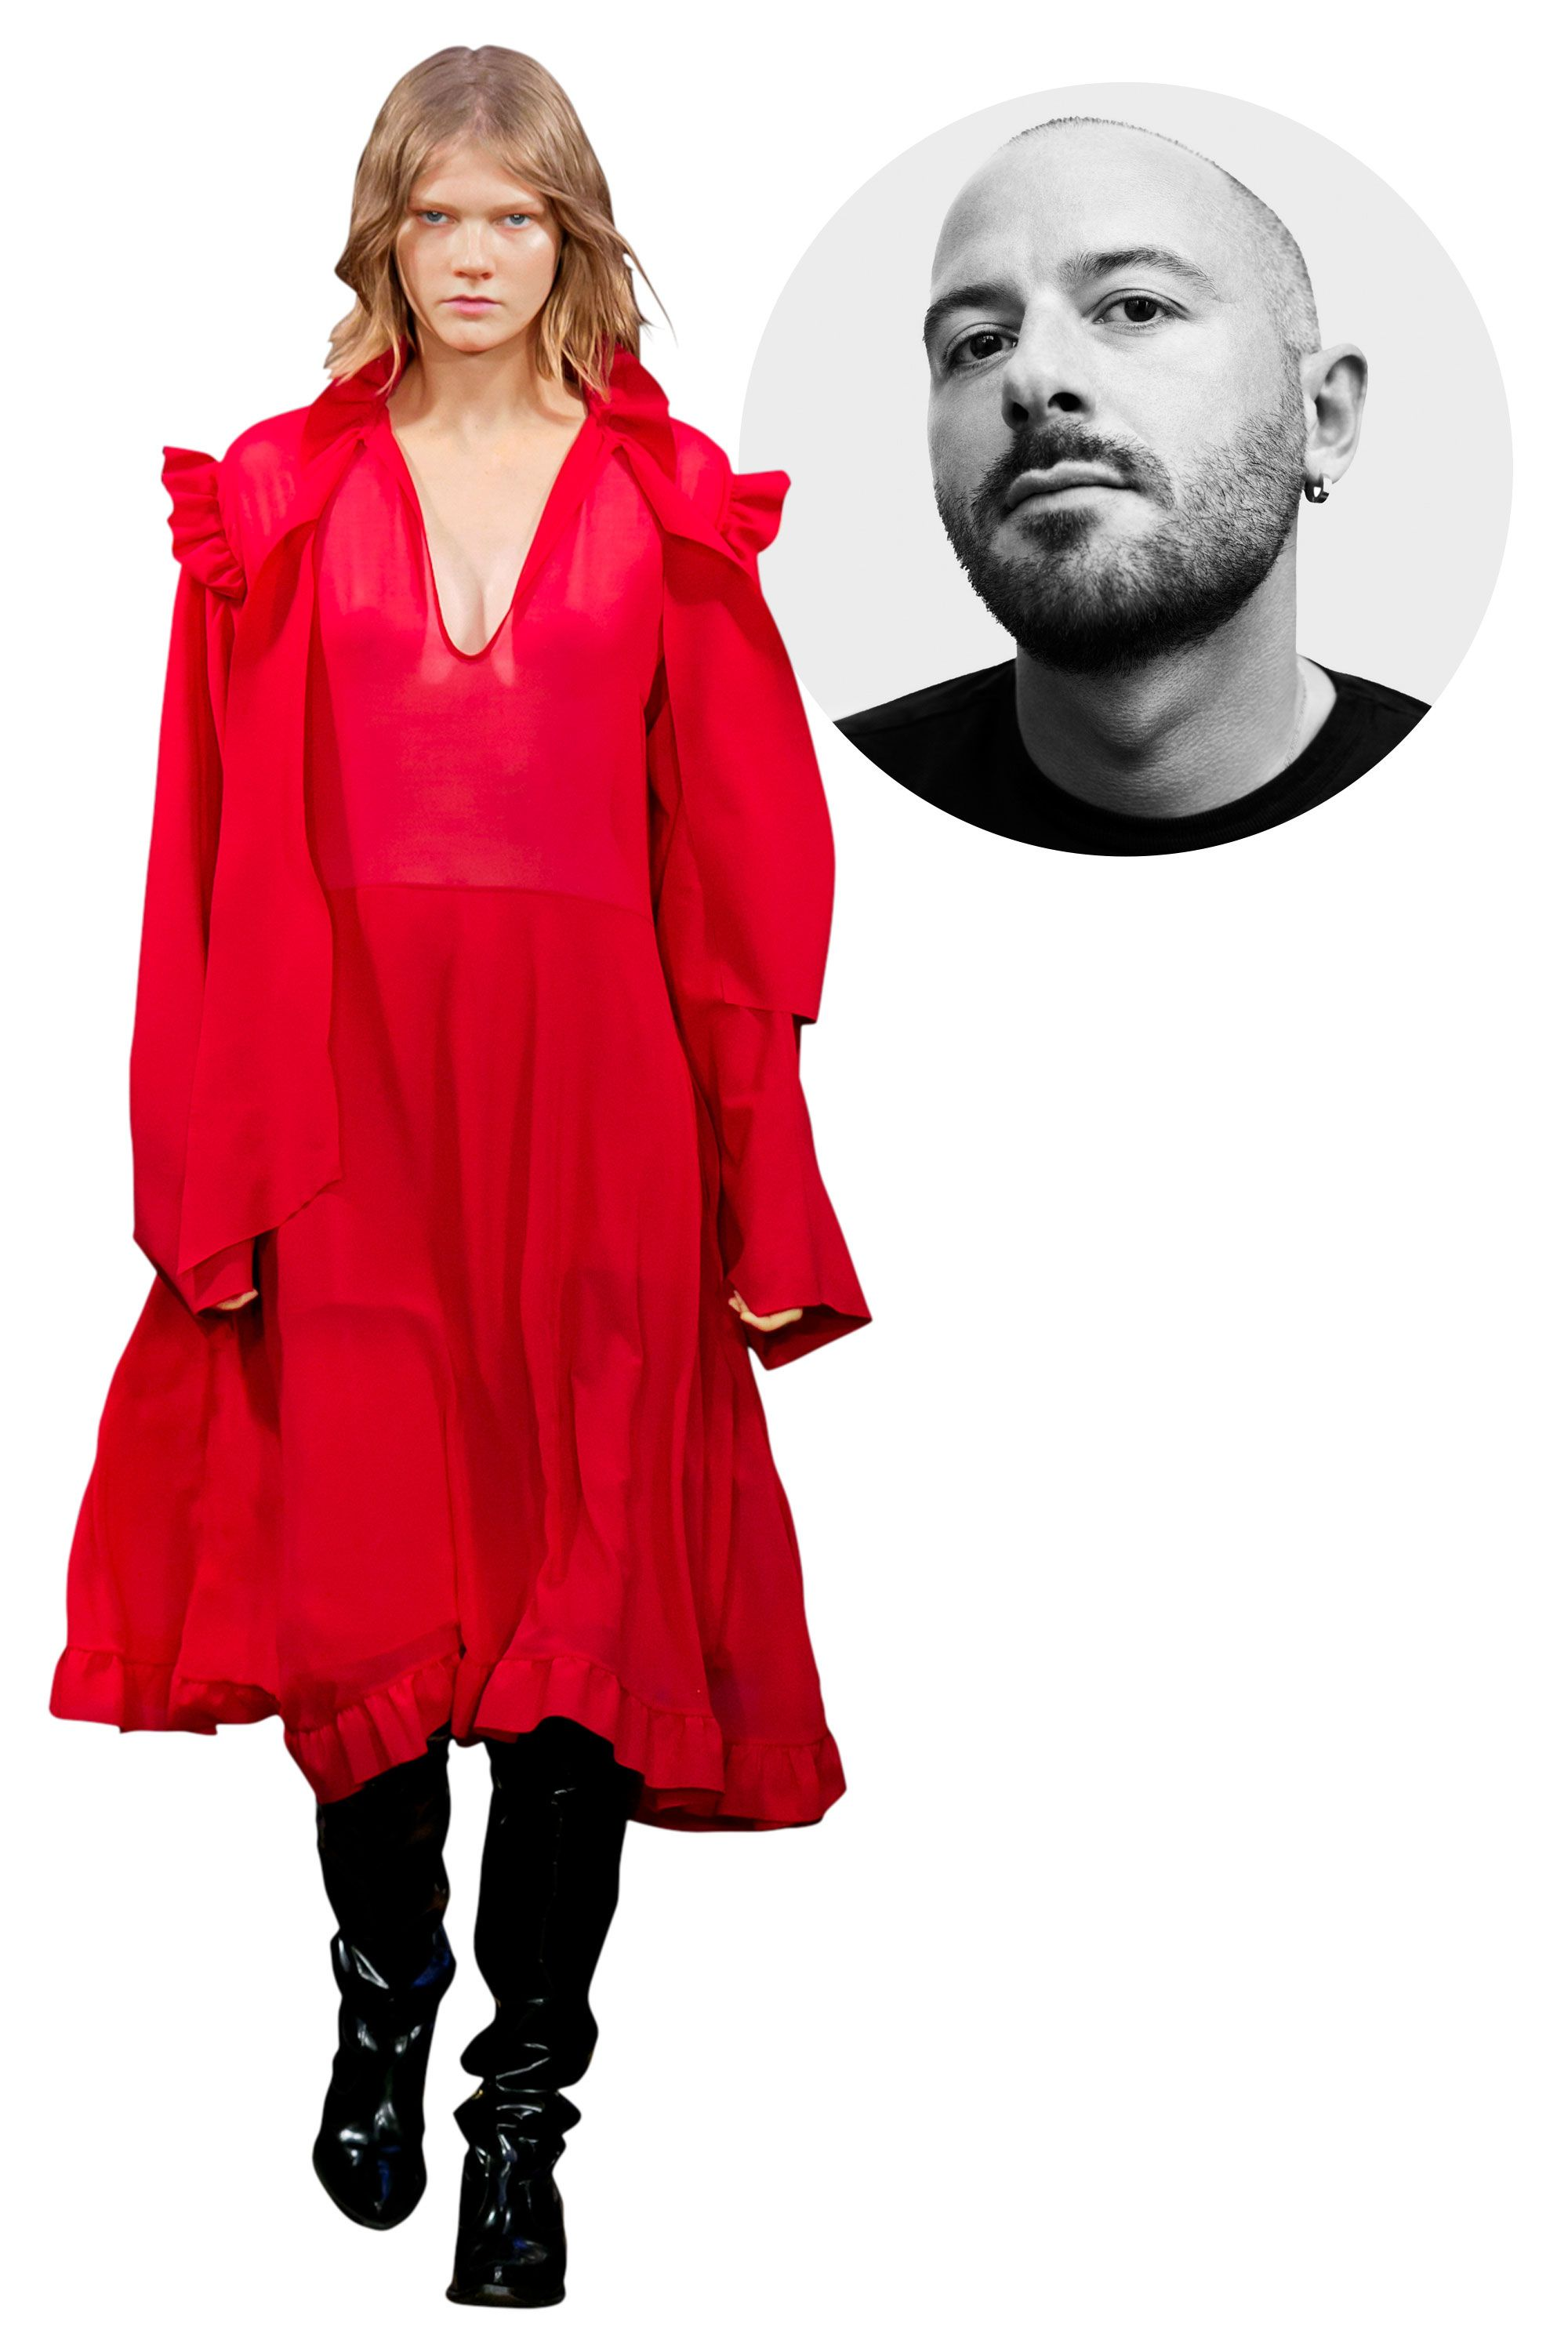 <p>Gvasalia, designer for the sought- after Düsseldorf-based fashion collective Vetements and a veteran of Martin Margiela and Louis Vuitton, became the talk of the town when he was named the new artistic director for Balenciaga, succeeding Alexander Wang. His first collection for the house will be shown this March.</p><p><em>Vetements, Spring 2016</em></p>